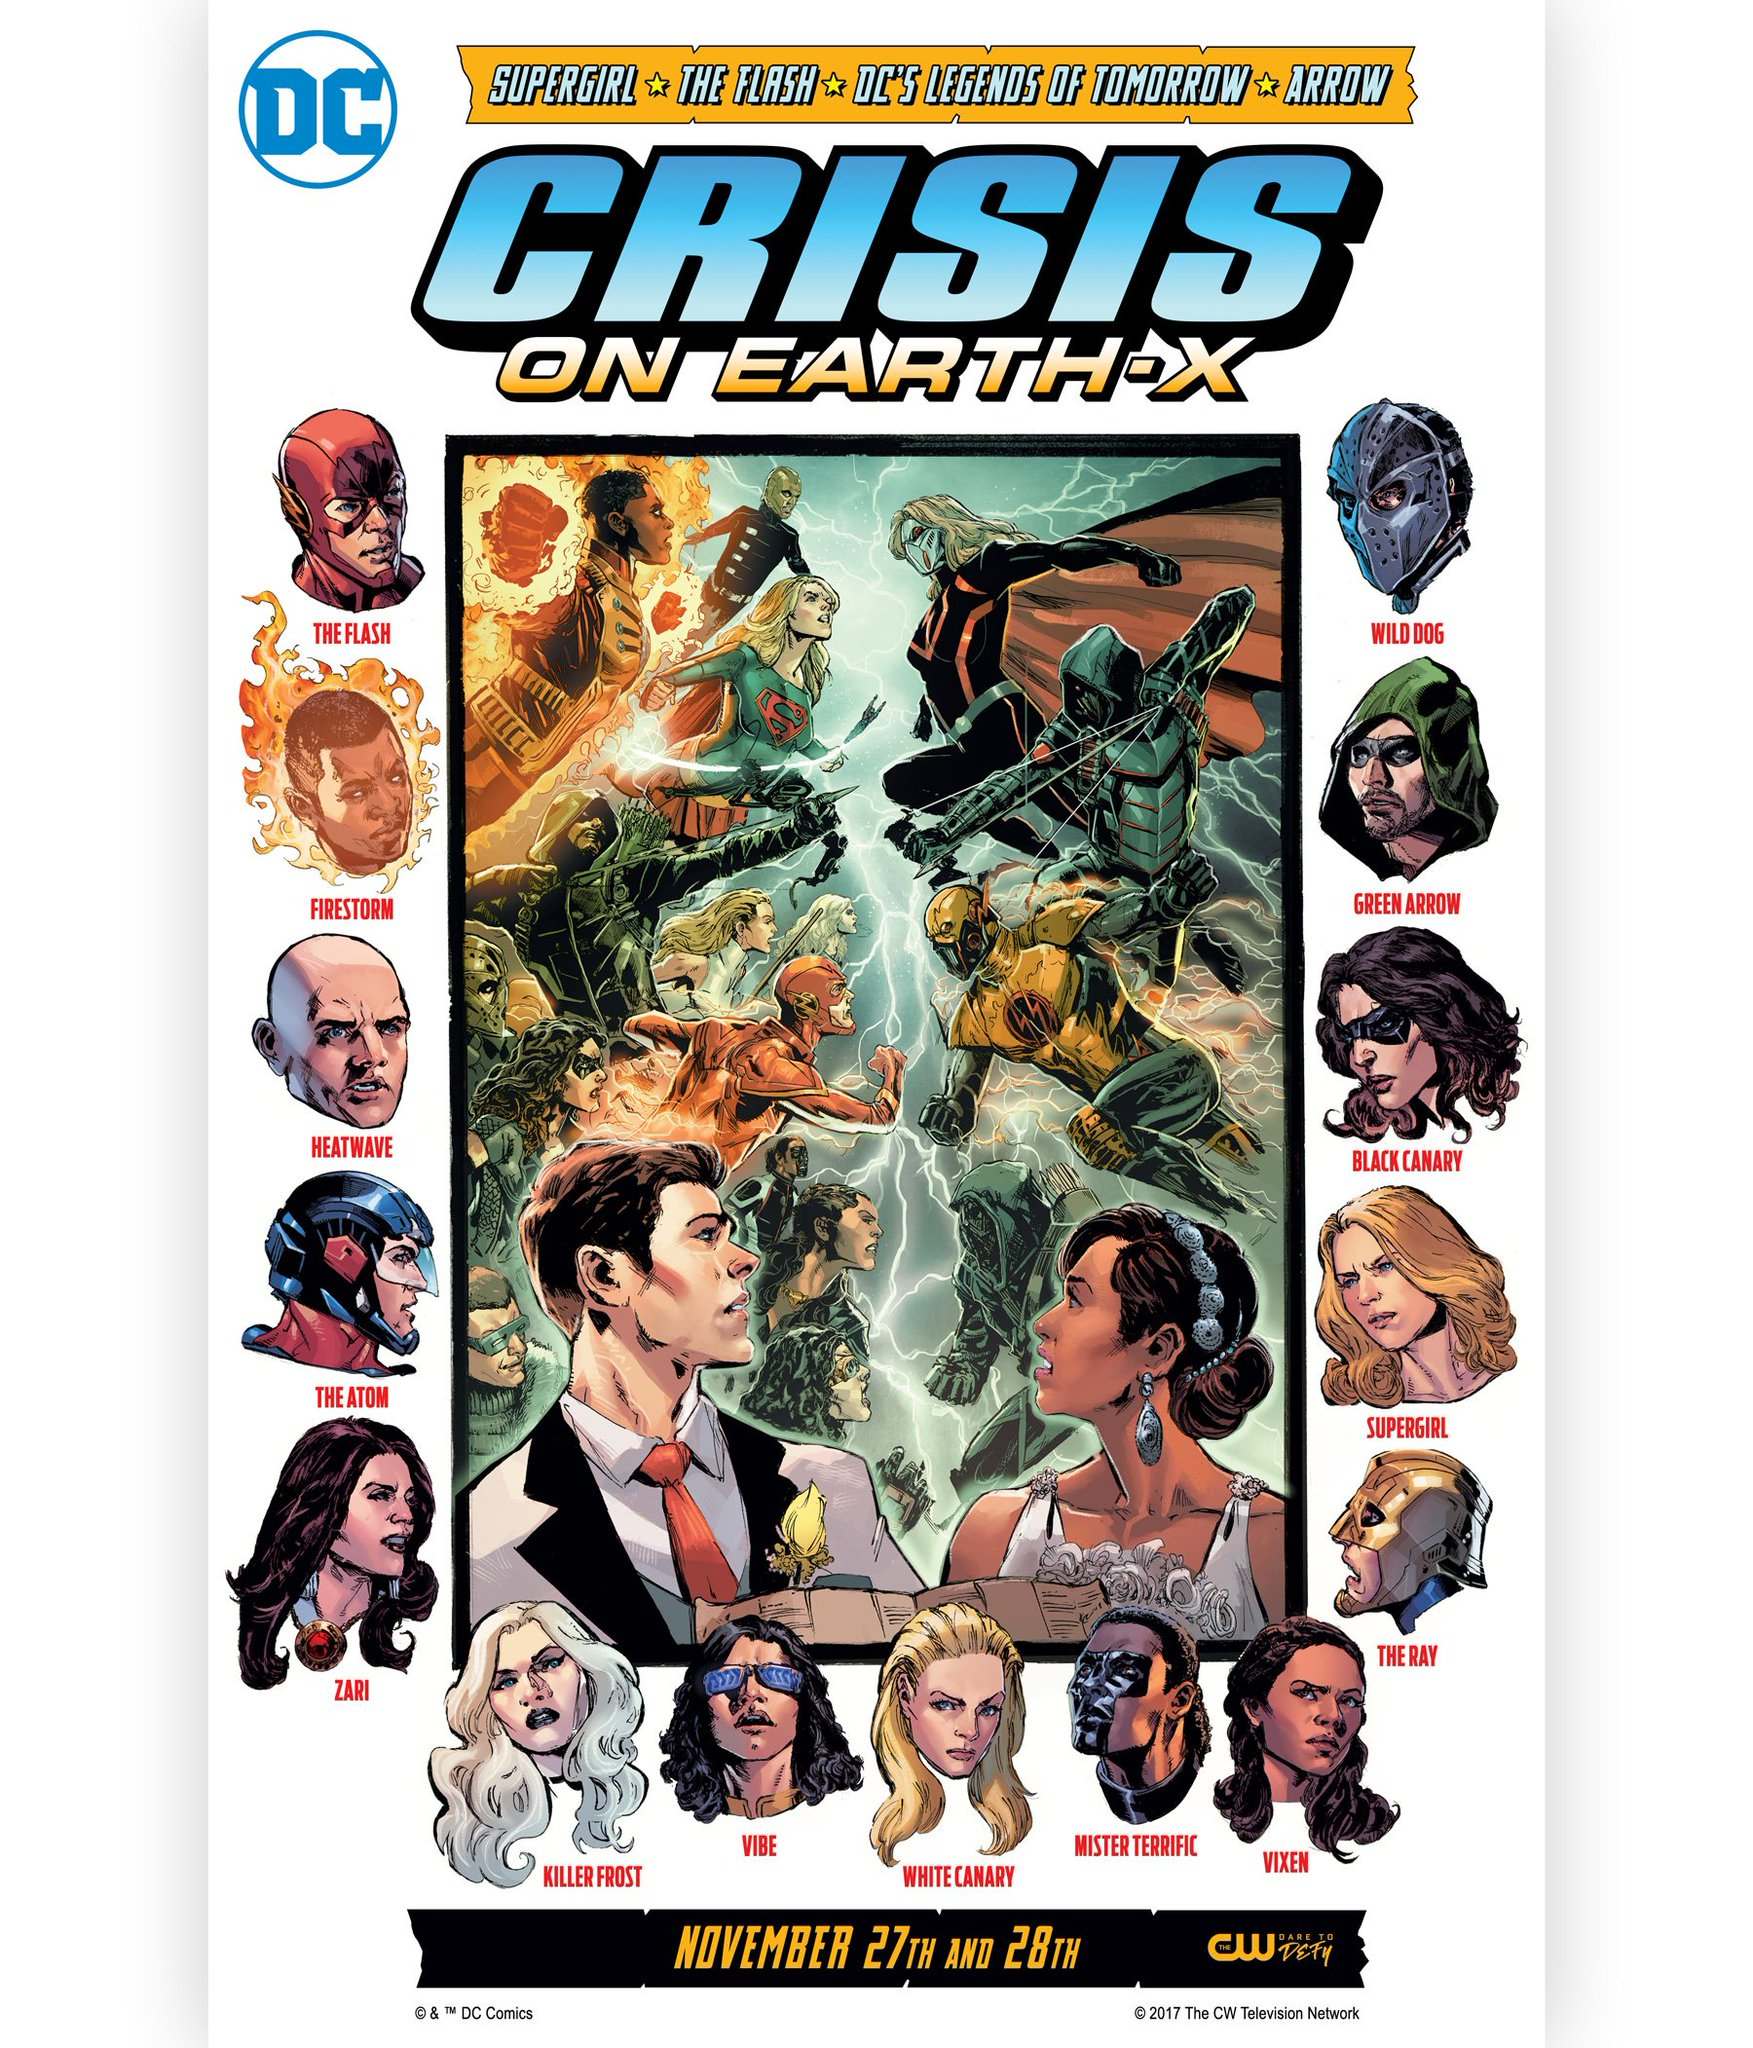 Crisis on Earth-X, the 4-part crossover event, begins November 27 on The CW! https://t.co/kaiRjK51Ki